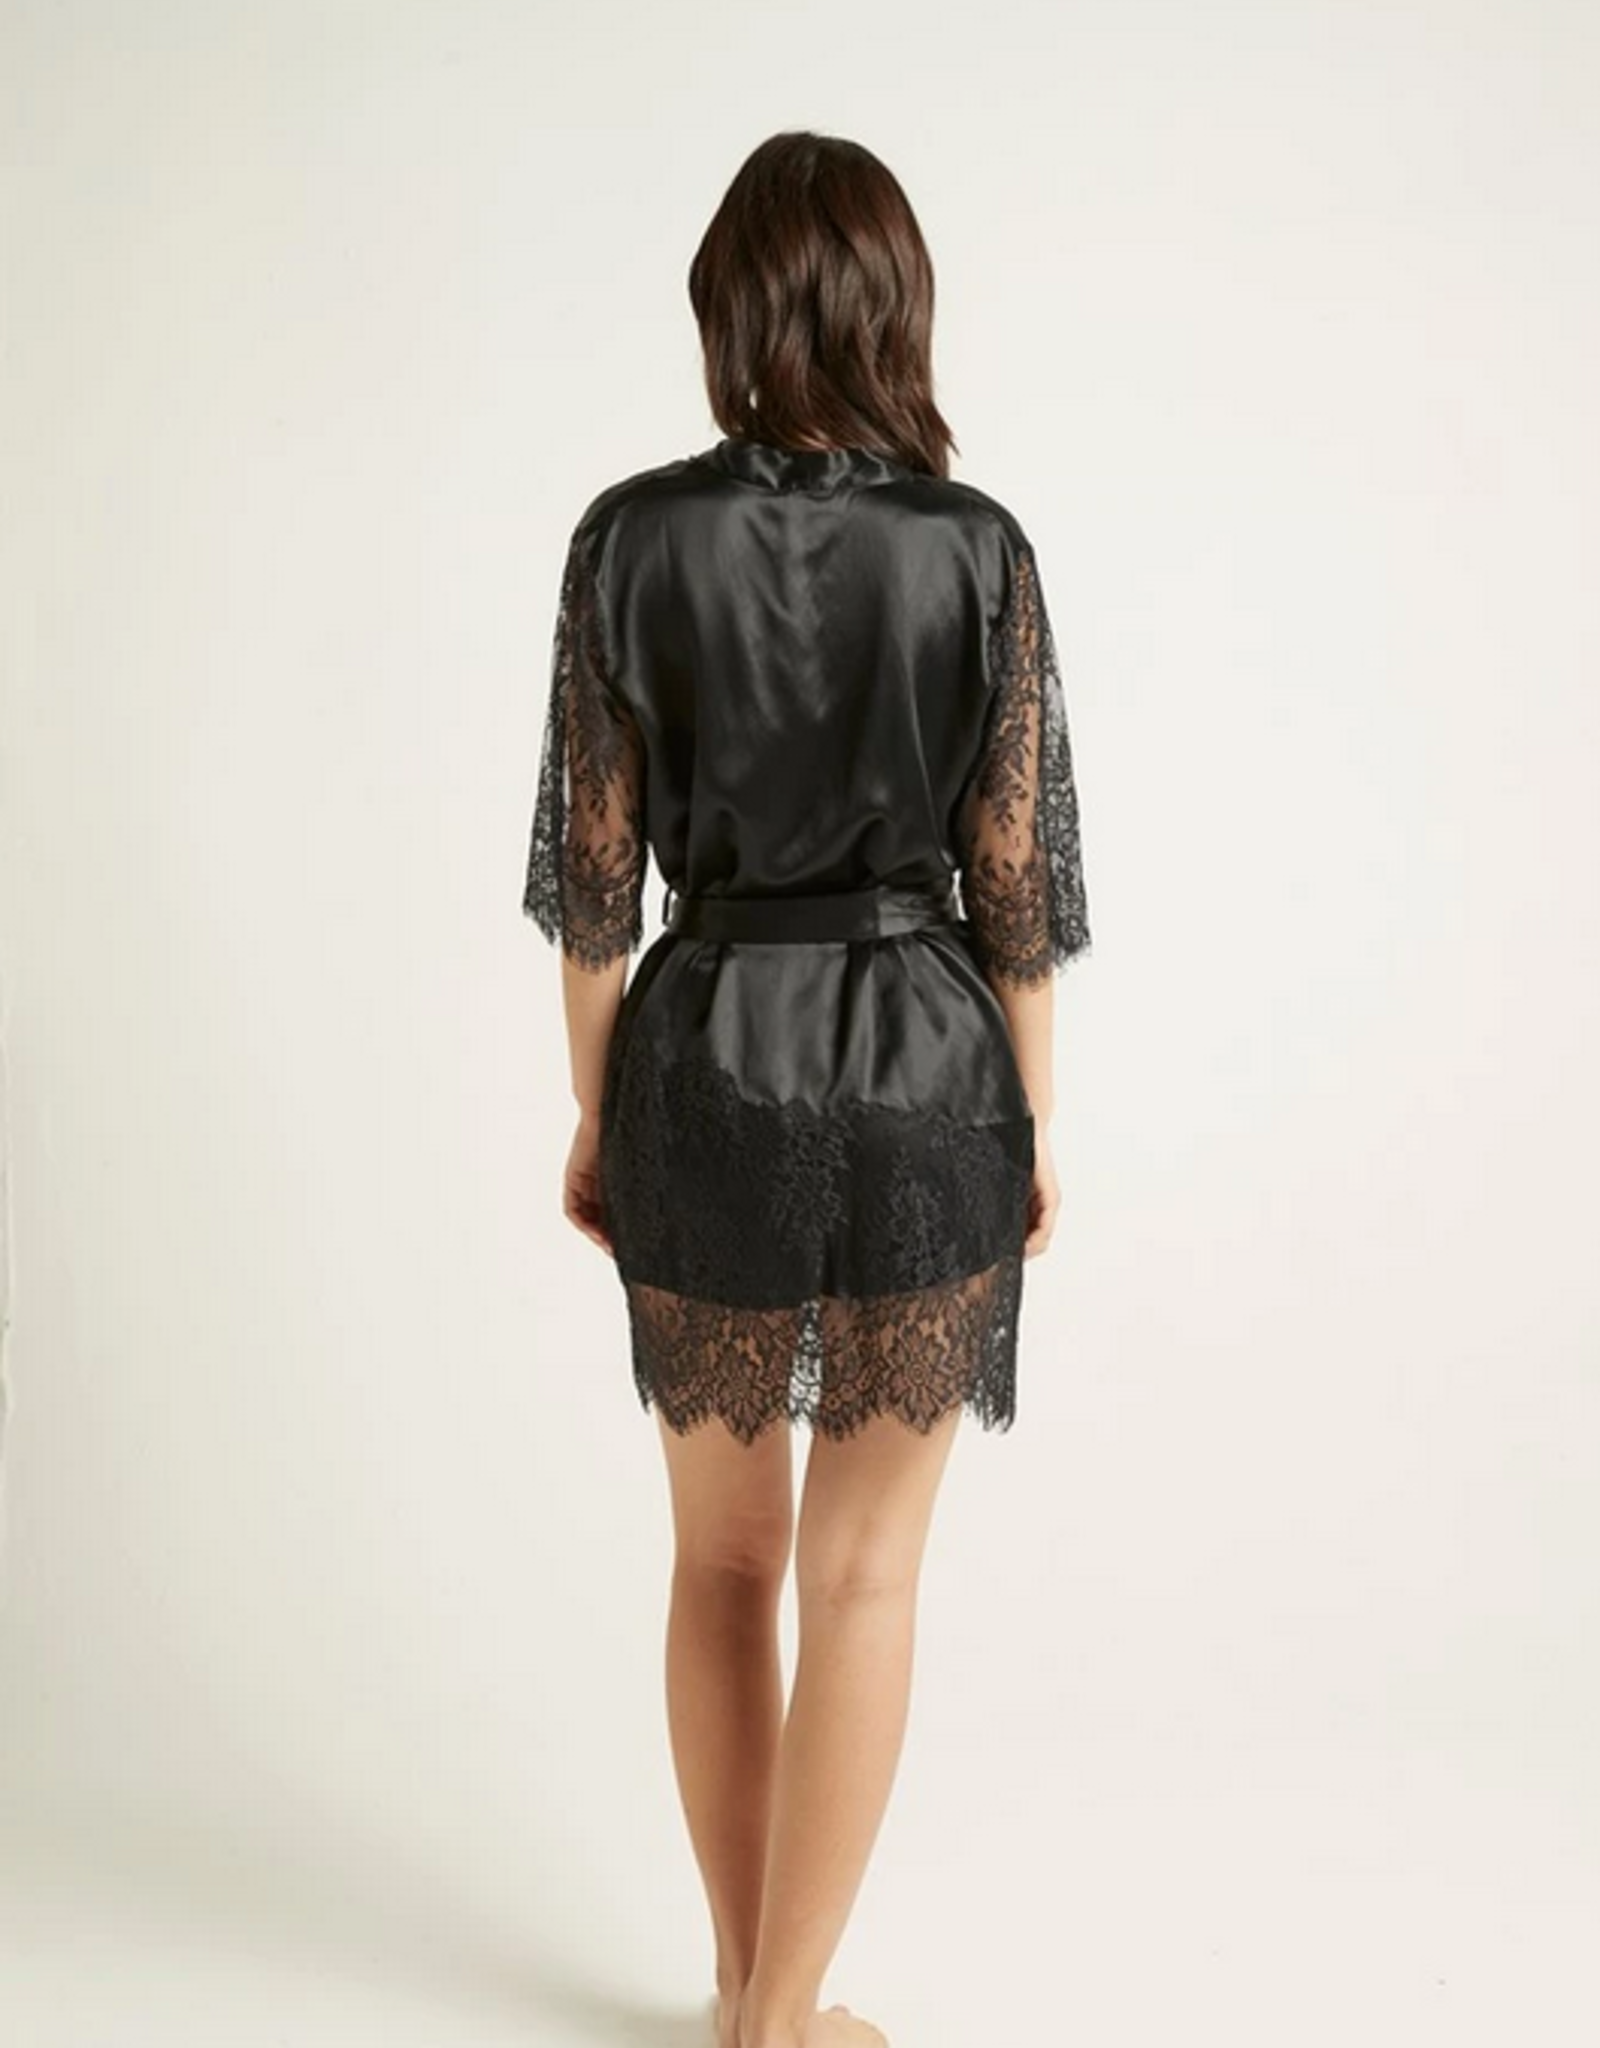 Ginia Blaise Silk Robe with Lace - Black Onyx